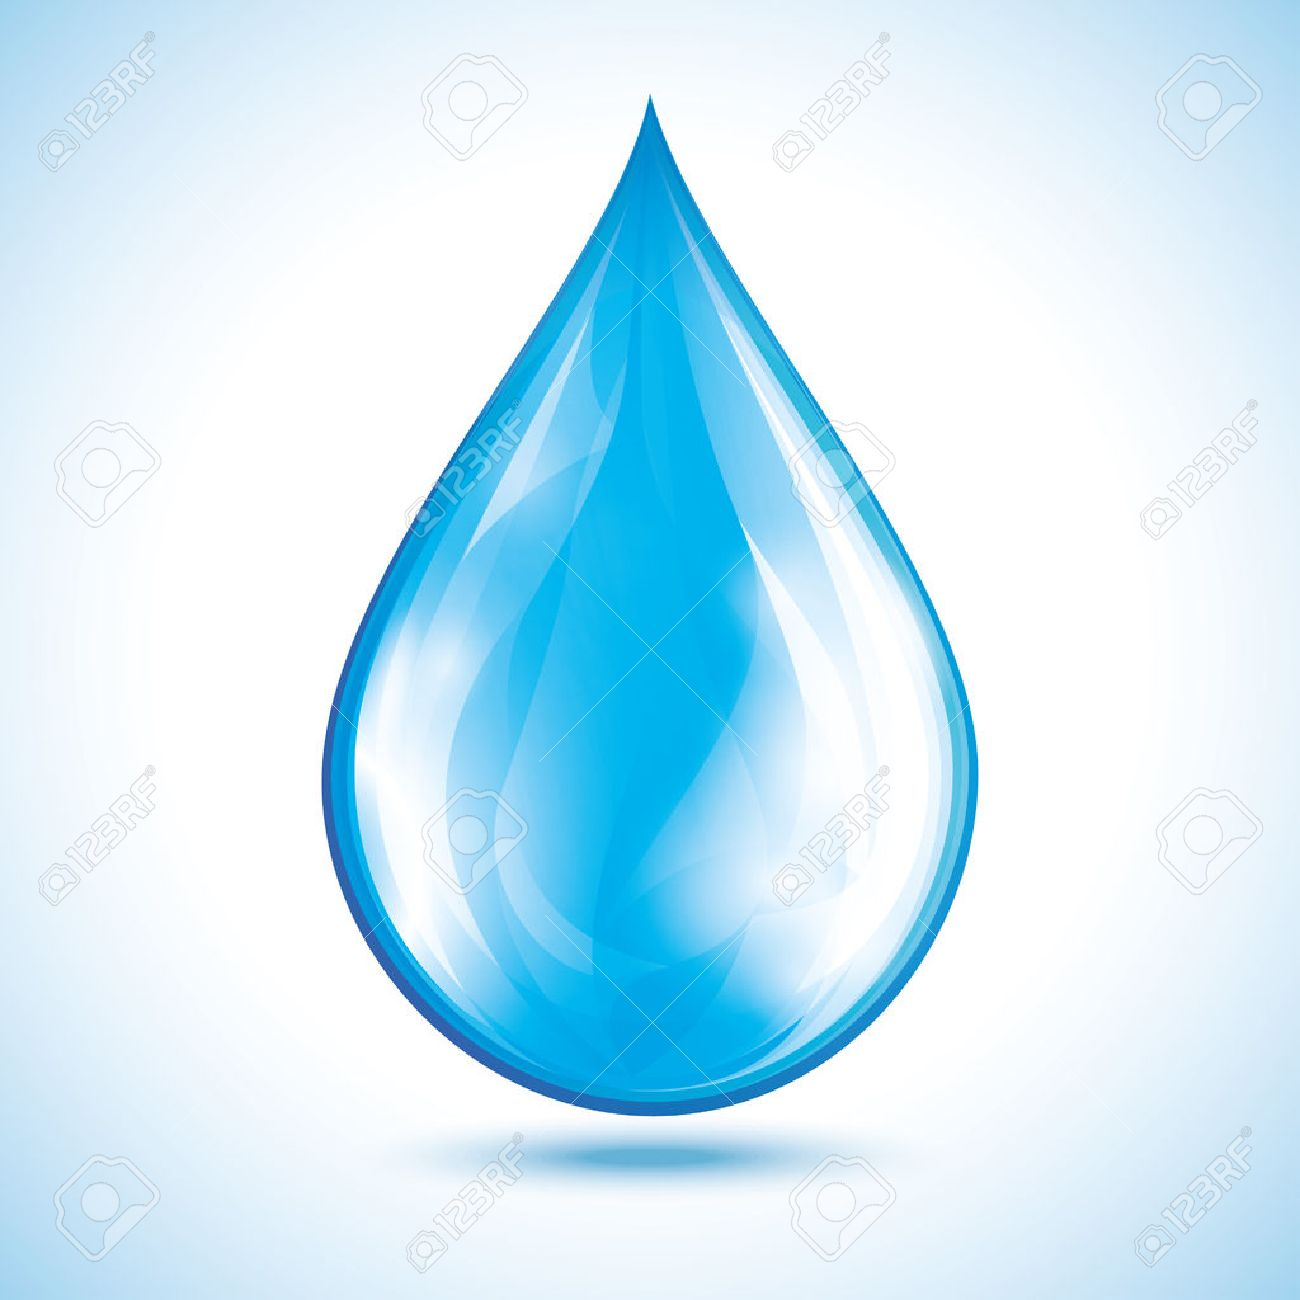 Water element clipart banner free Dew Drop Clipart water element - Free Clipart on Gotravelaz.com banner free